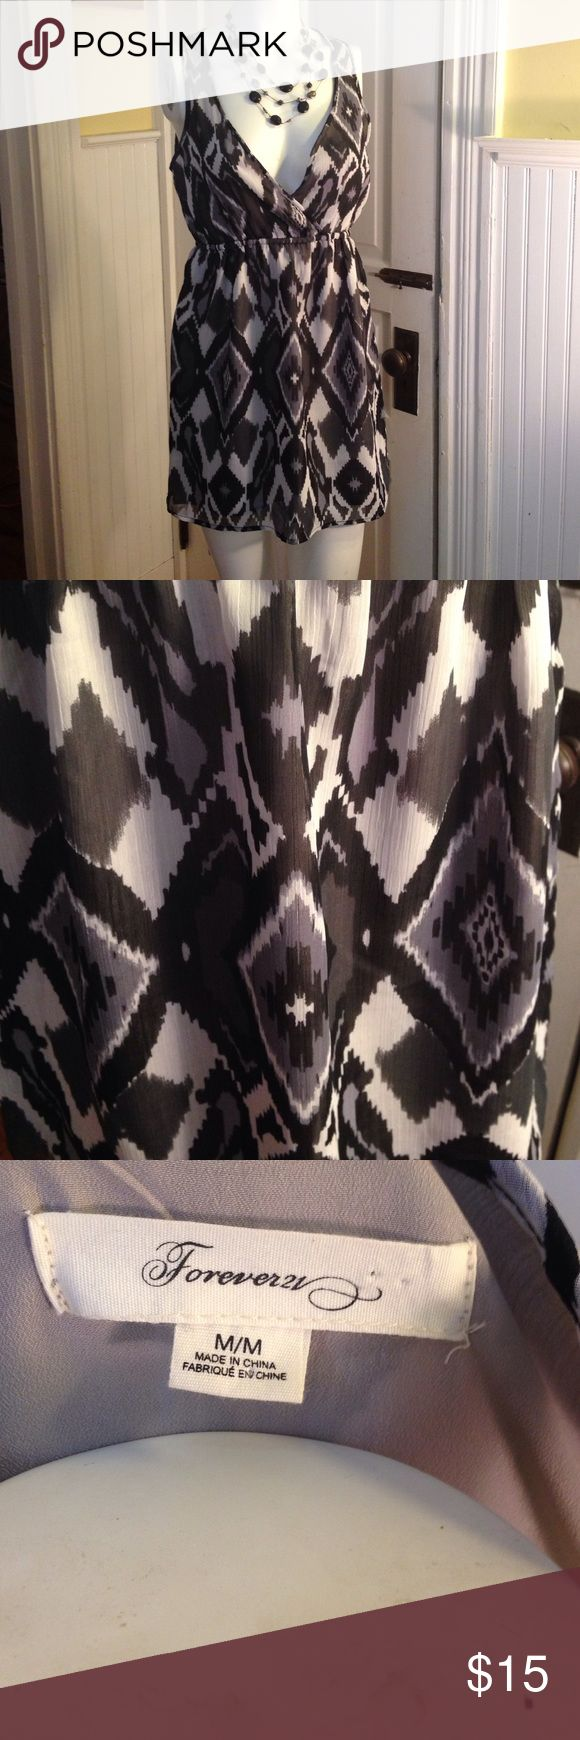 Black,white& gray diamond pattern short dress Med. Black,white& gray diamond pattern short dress Med. Forever 21 brand great condition. Low cut v neck. Size medium. Good condition Forever 21 Dresses Mini